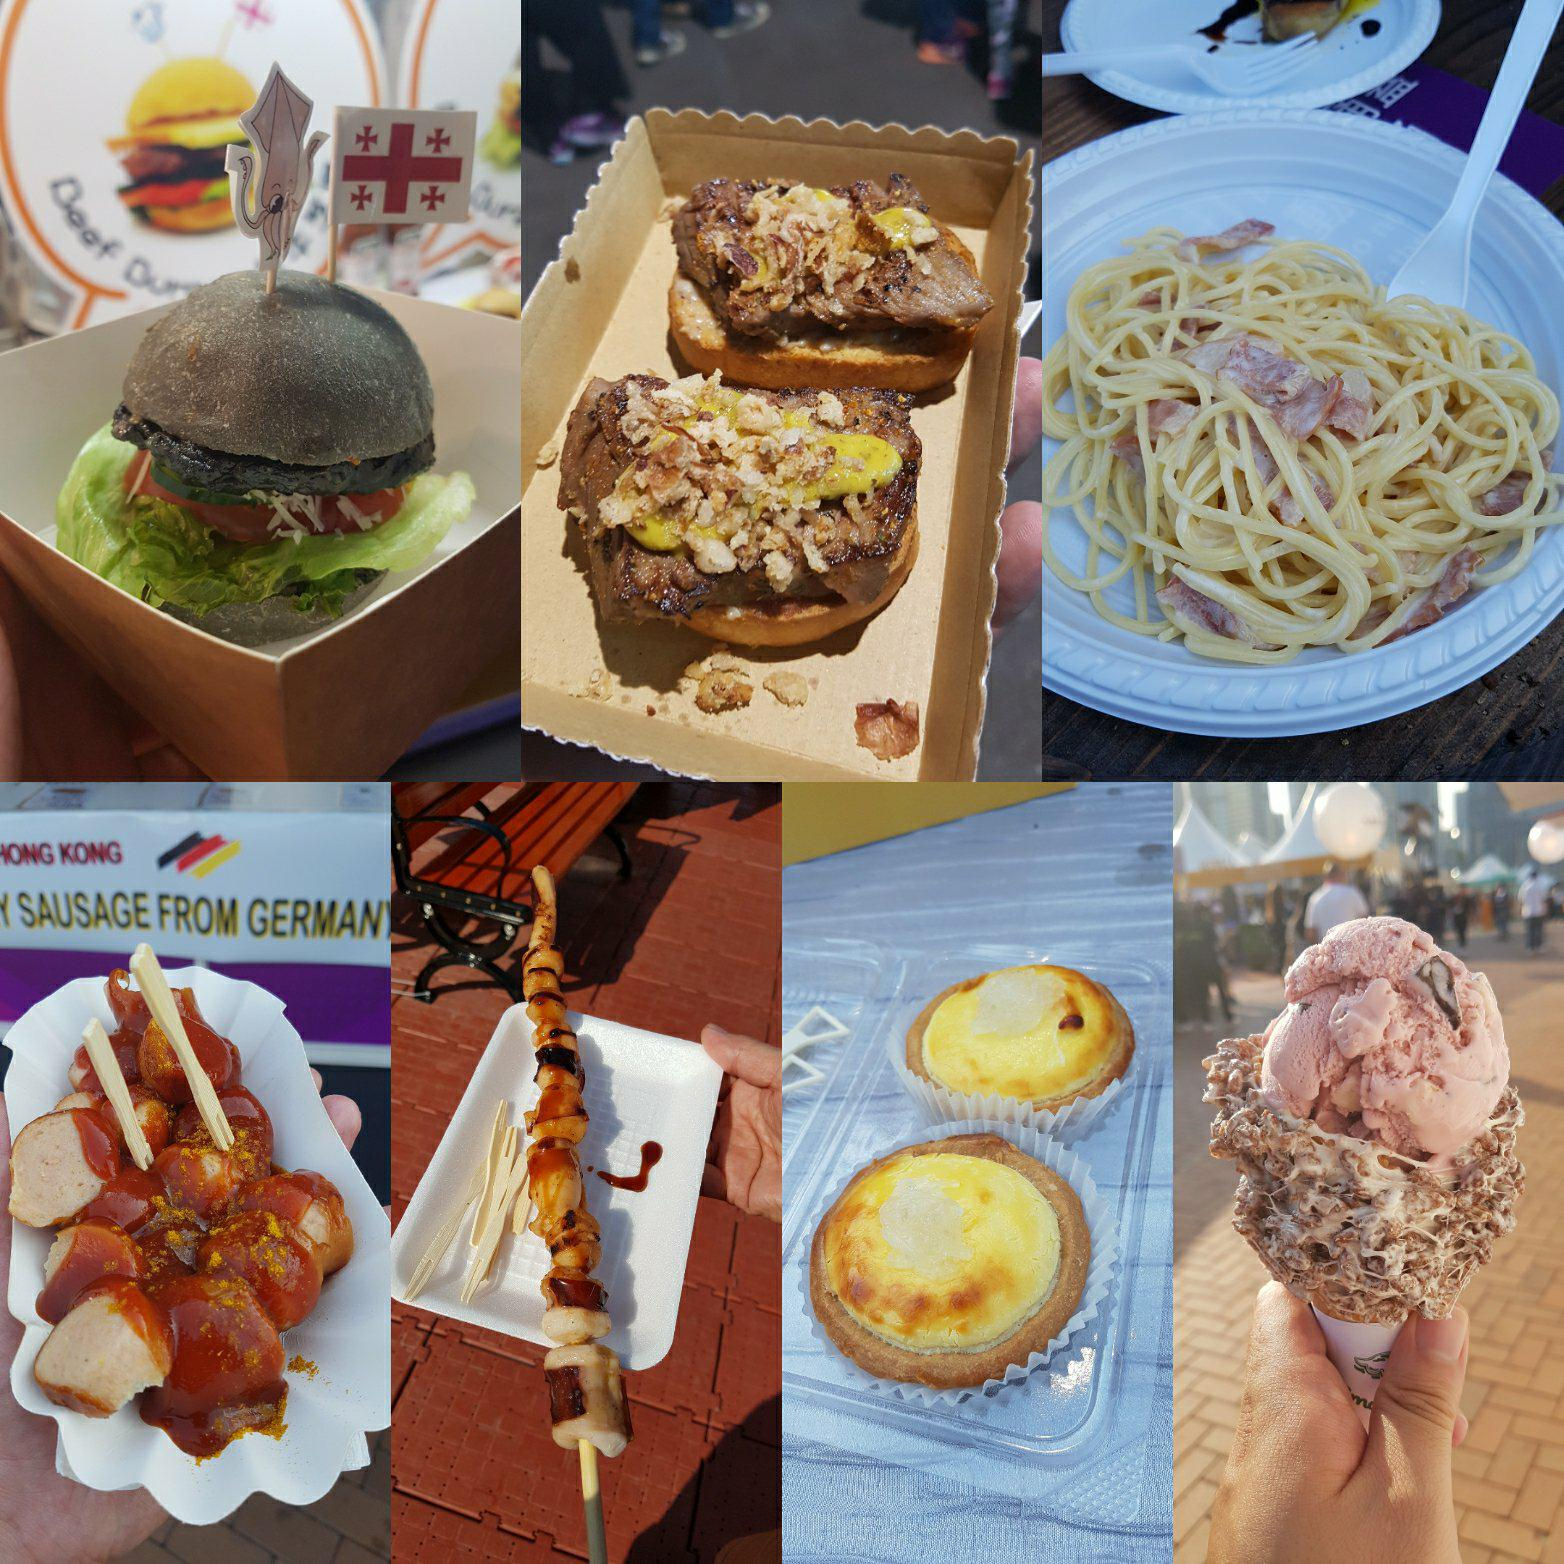 CCB (Asia) Wine and Dine Food Festival in Hong Kong